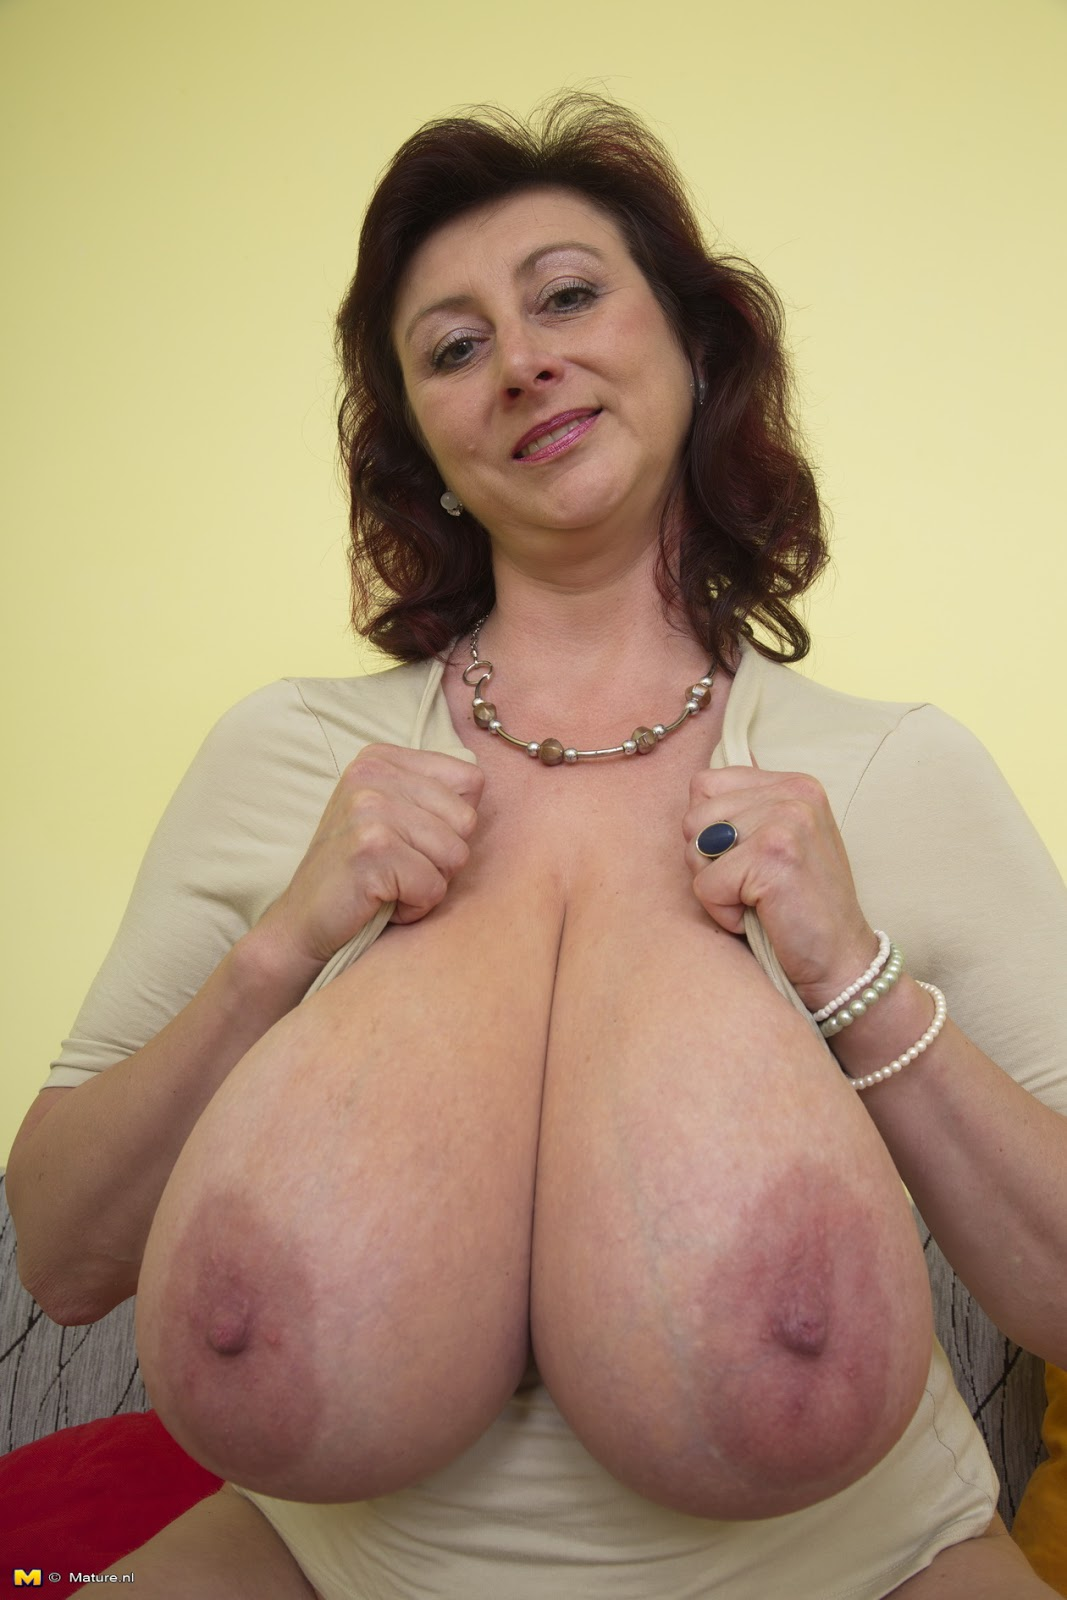 Women With Large Natural Breasts